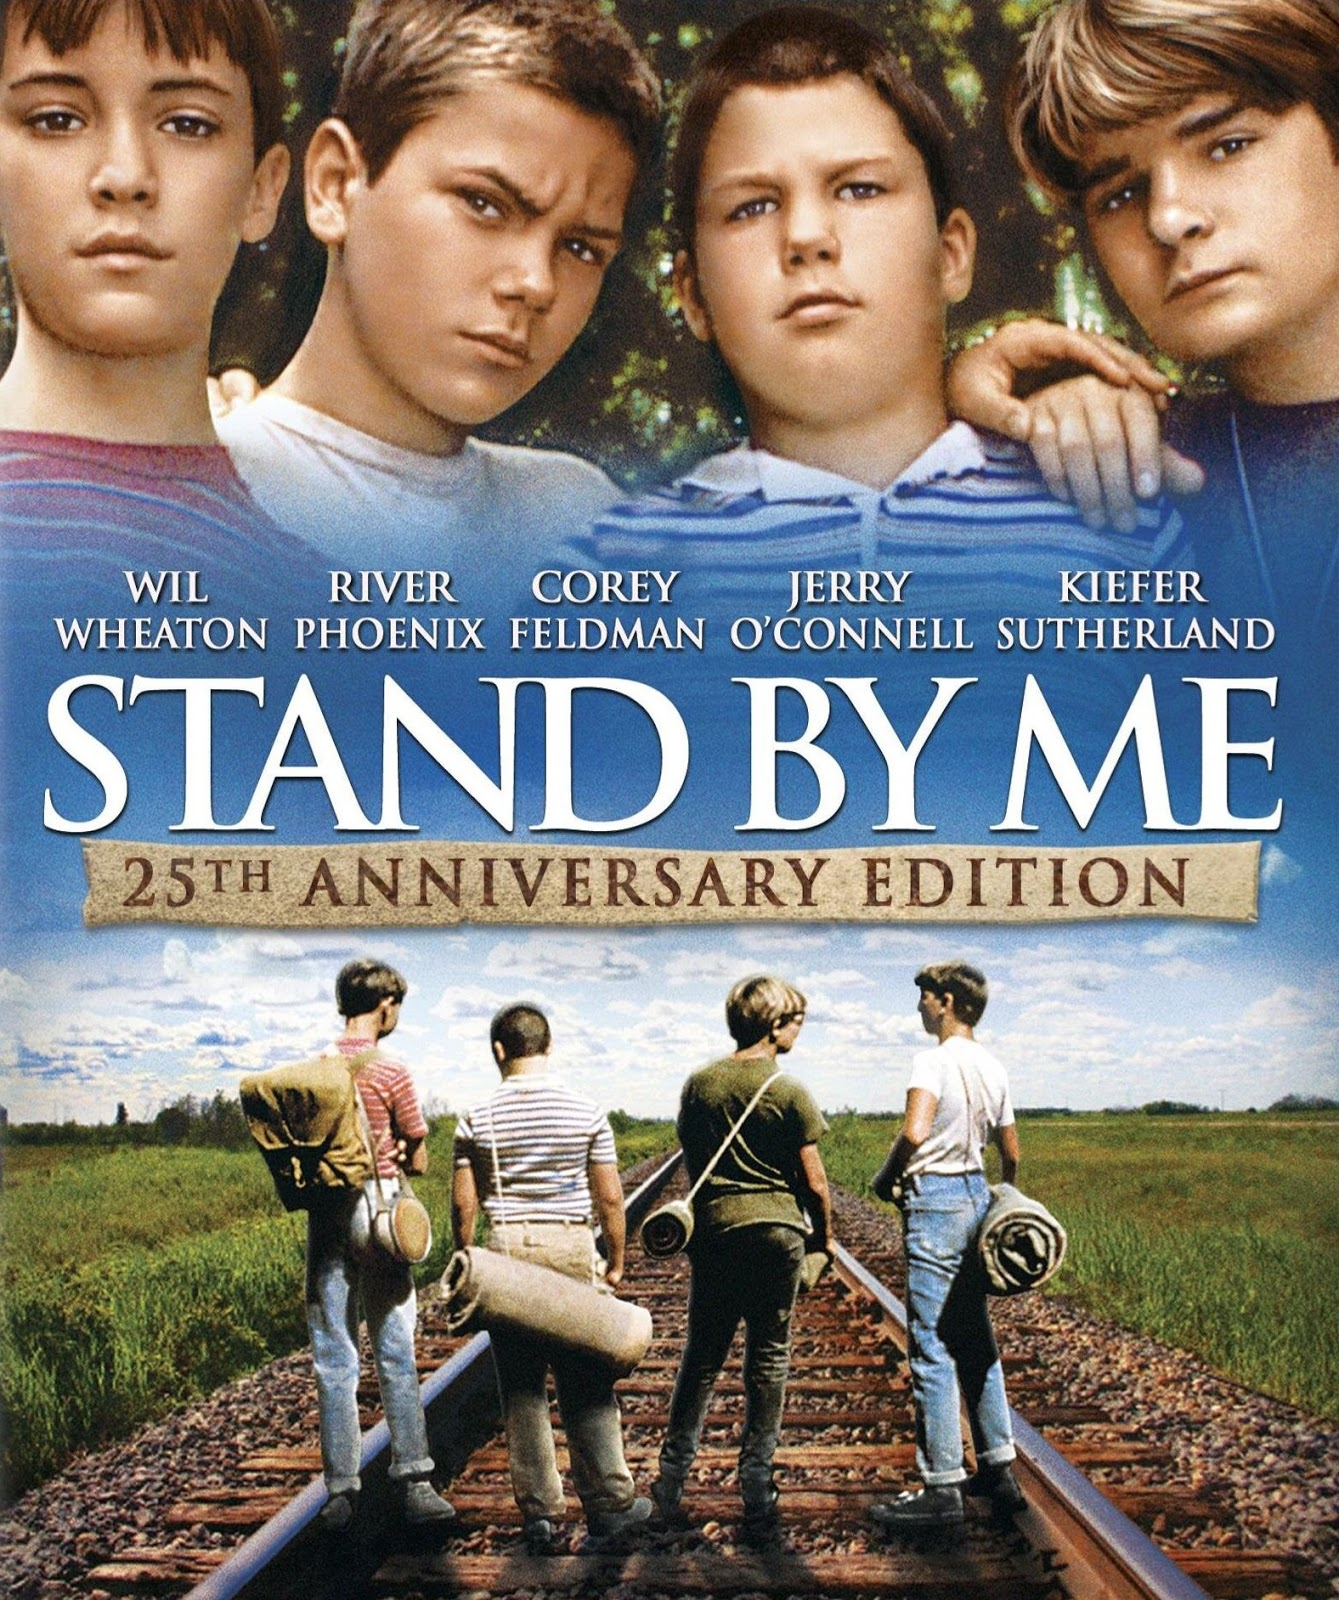 """essays on movie stand and deliver There were moments in """"stand and deliver"""" that moved me very deeply and other moments so artificial and contrived that i wanted to edit them out, right then and there the result is a film that makes a brave, bold statement about an unexpected subject, but that lacks the full emotional power it really should have""""stand and deliver"""" tells the."""